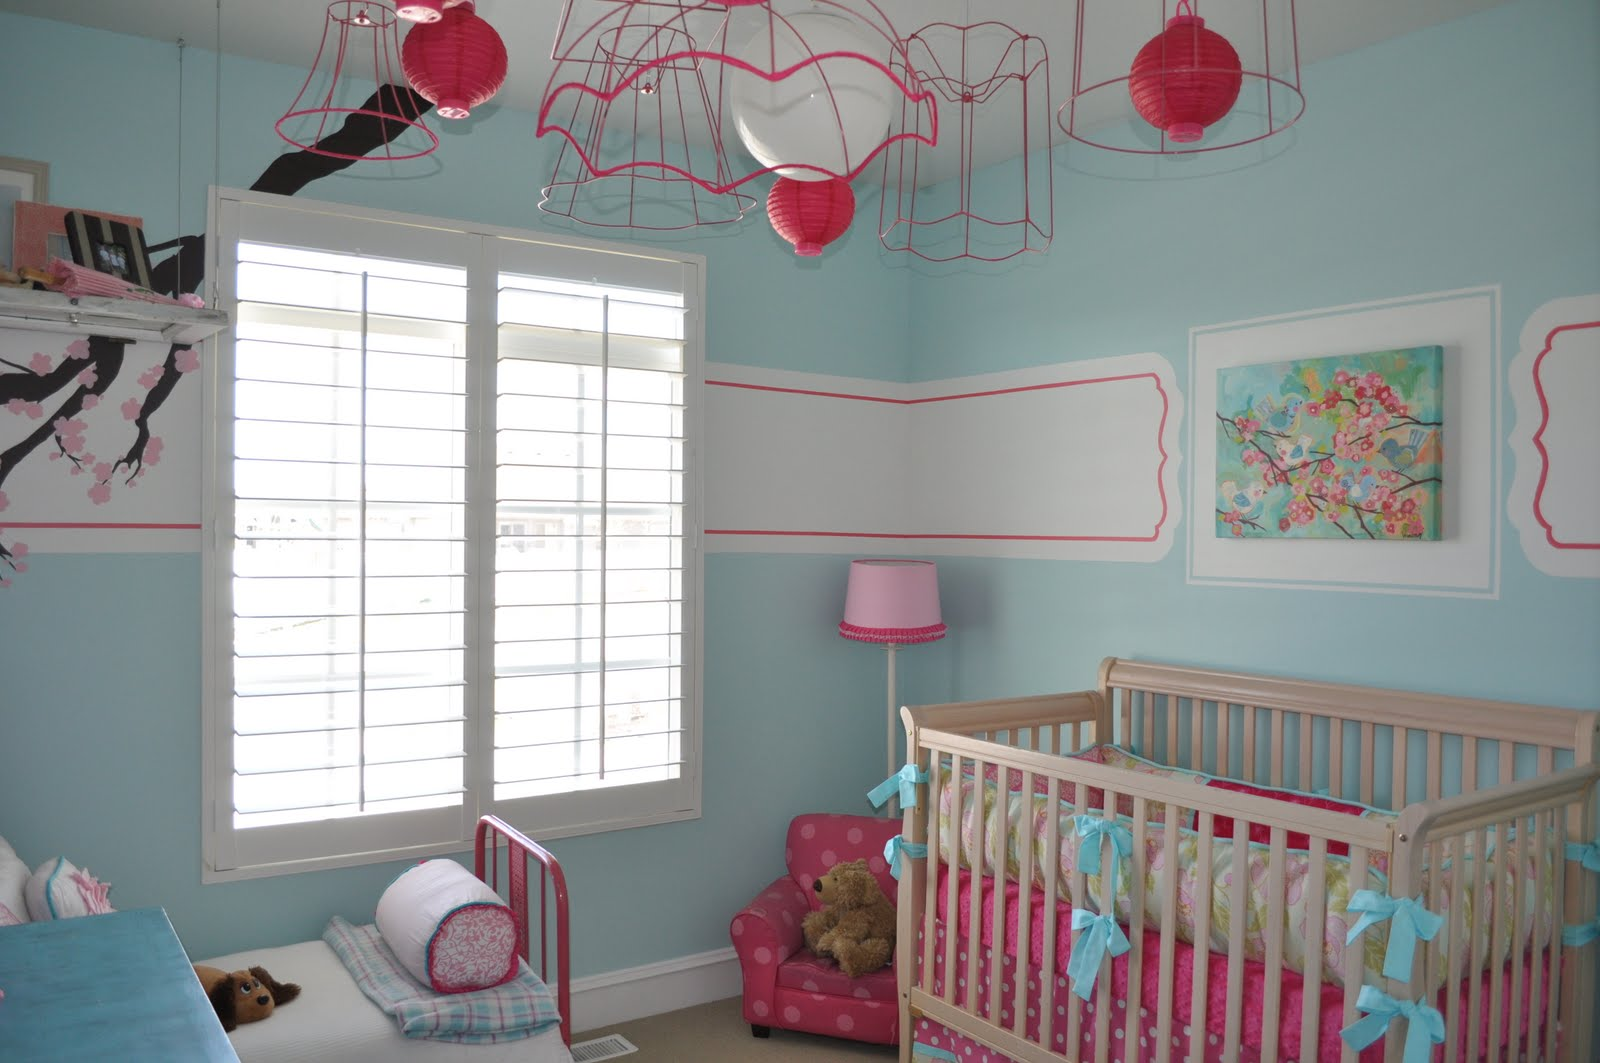 37 Small Nursery Ideas For Your Baby Girl Bedroom Themes Nrb